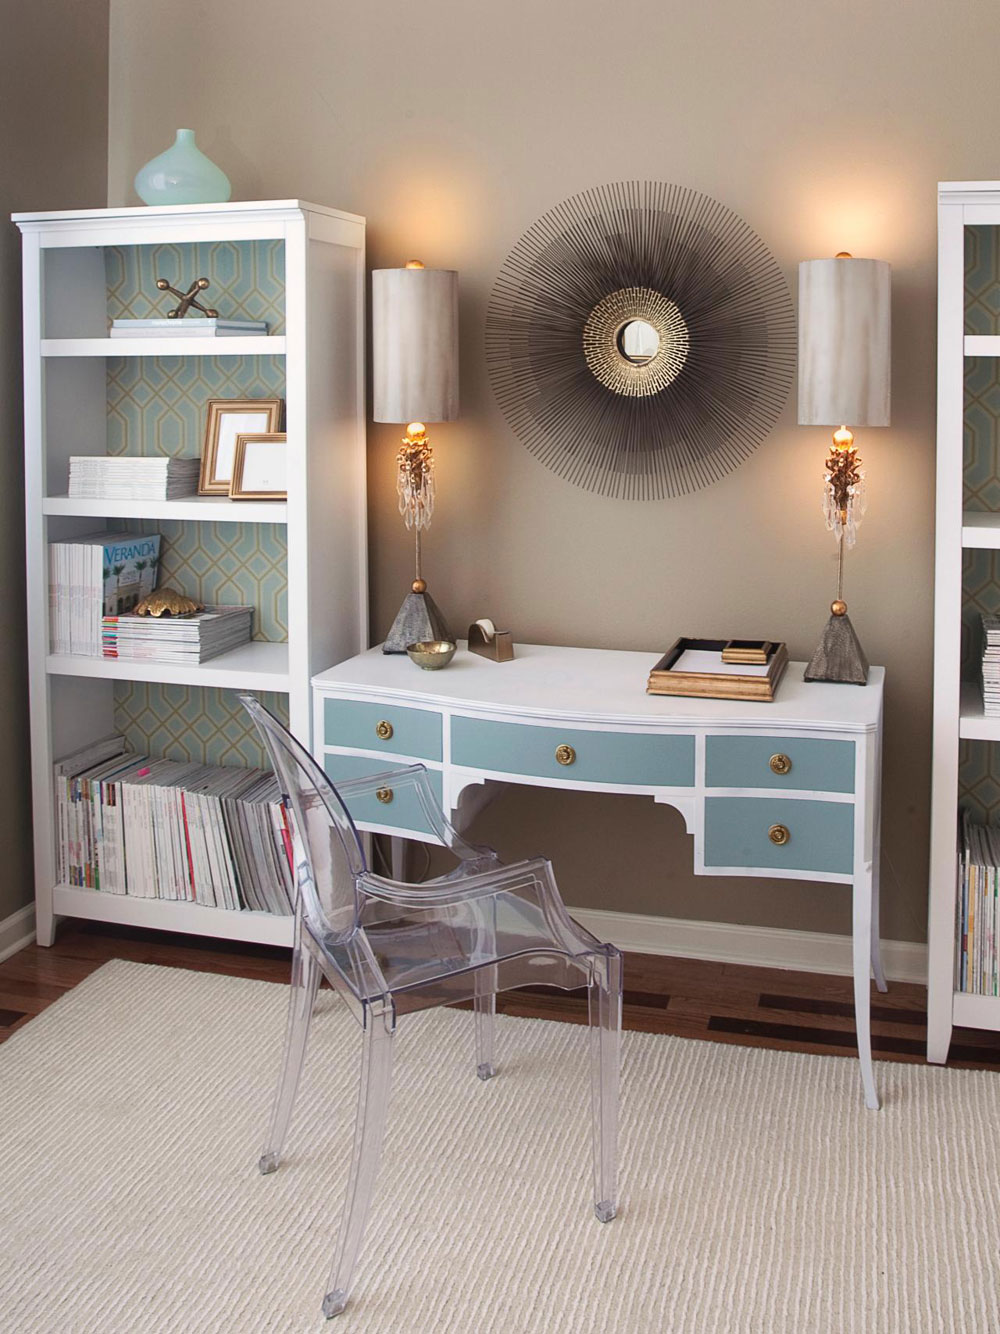 Great-home-office-design-ideas-for-the-work-of-home-people-8 Great home-office design-ideas for work from home people